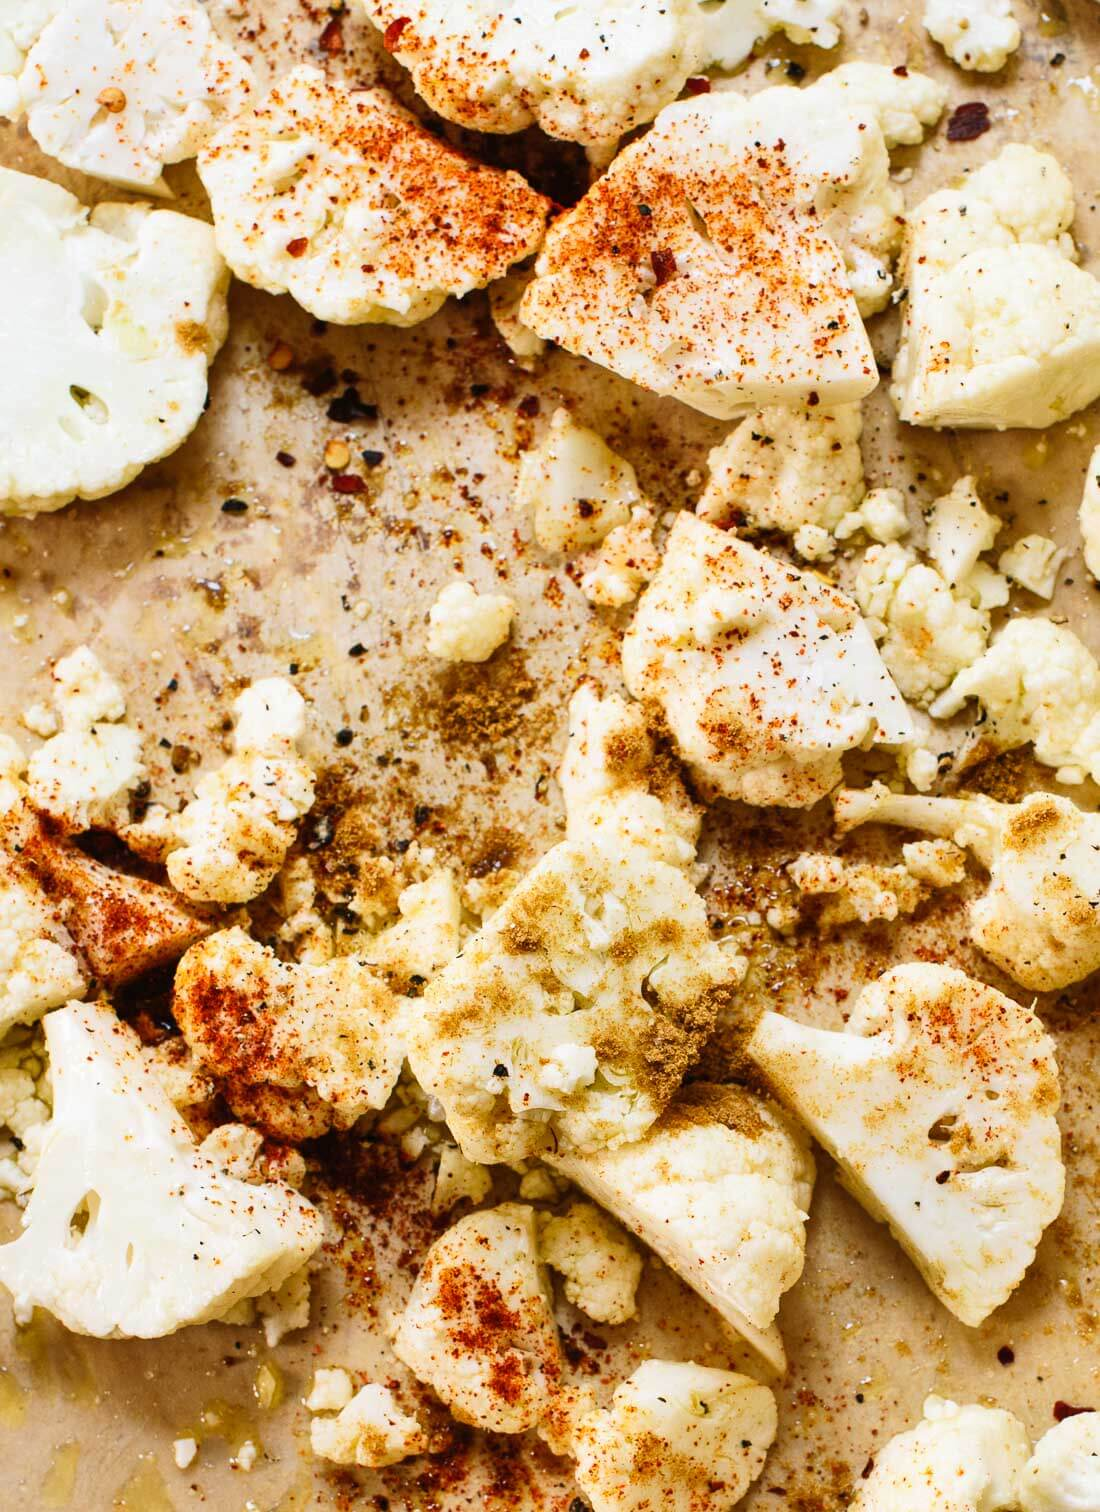 Cauliflower with Mexican spices